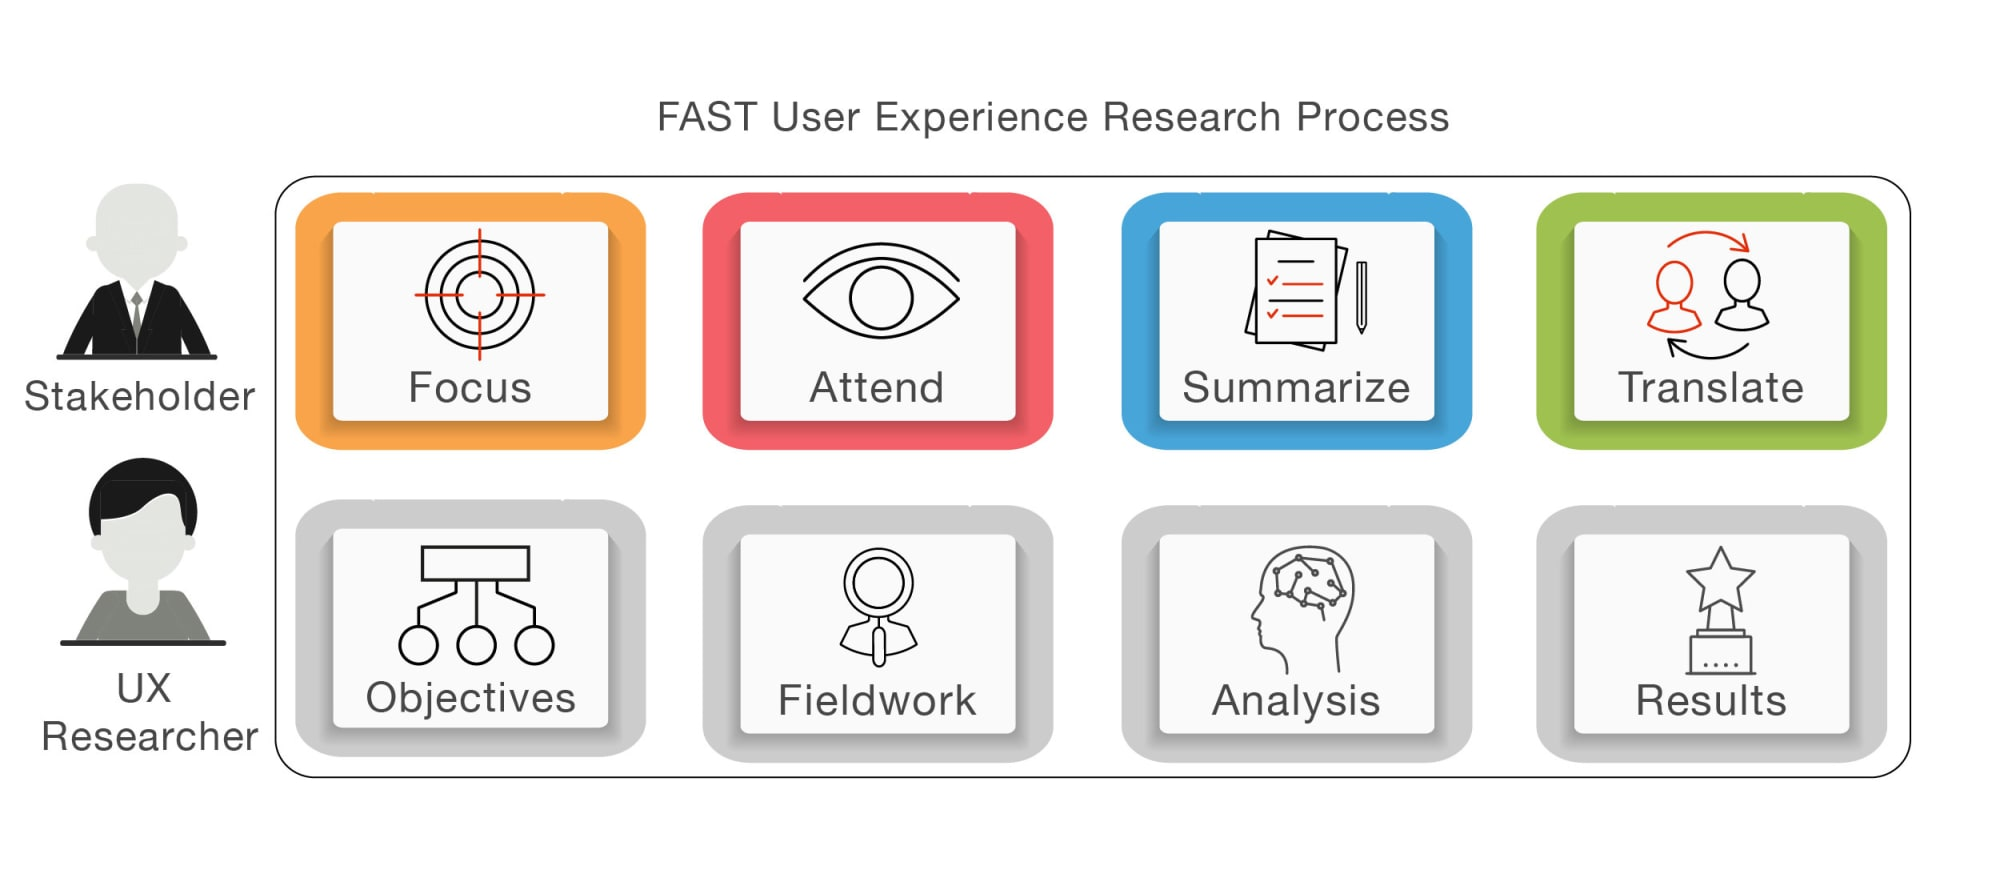 FAST user experience research process framework